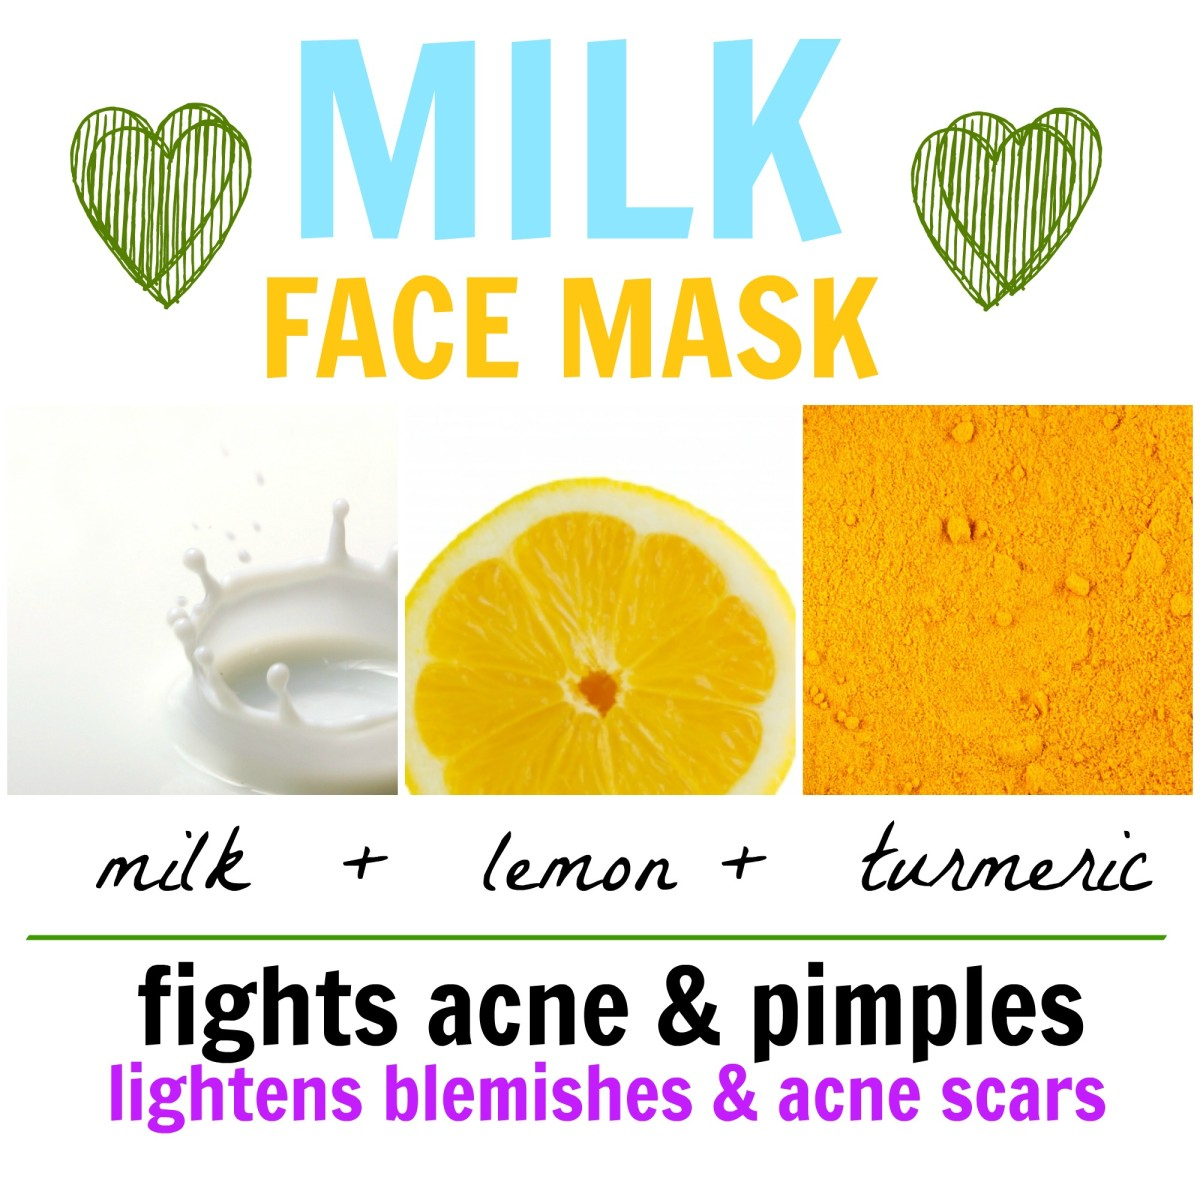 This milk face mask is handy for clearing acne and pimples, as well as diminishing blemishes.